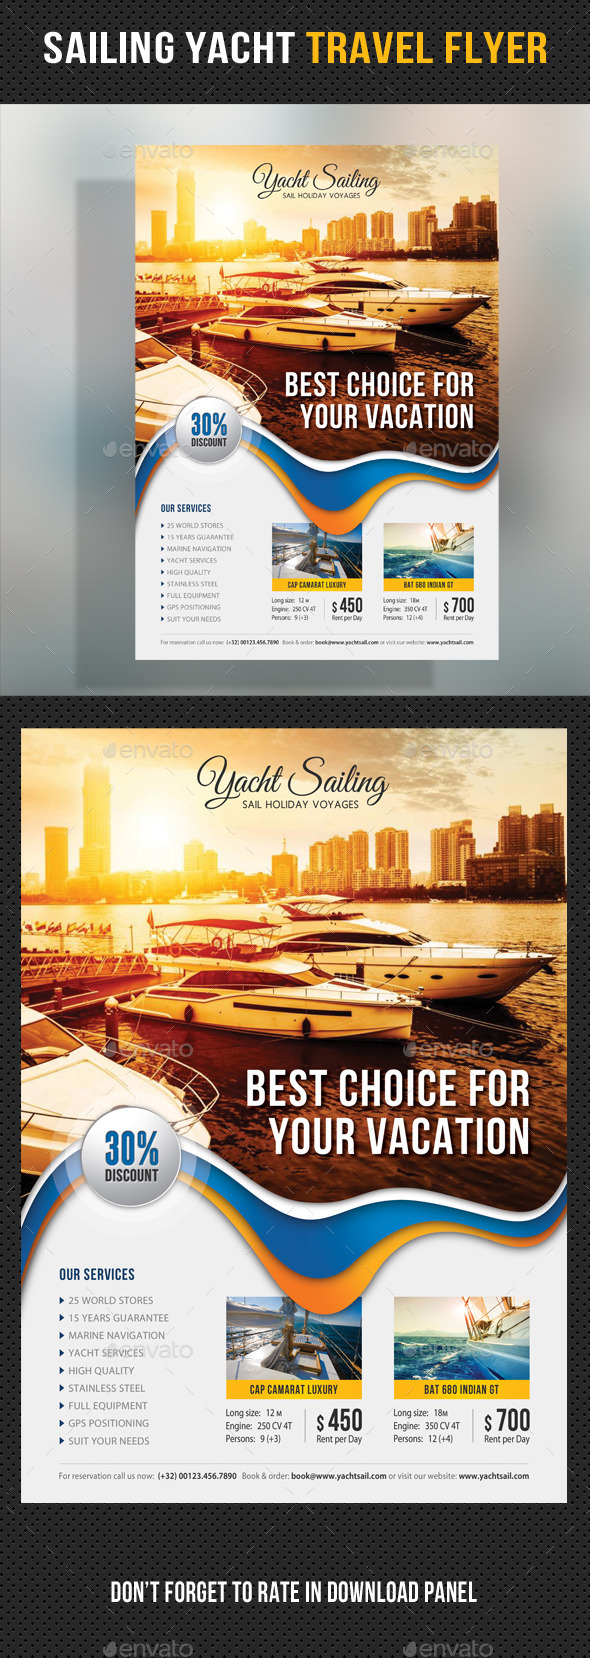 Sailing Yacht Travel Flyer 08